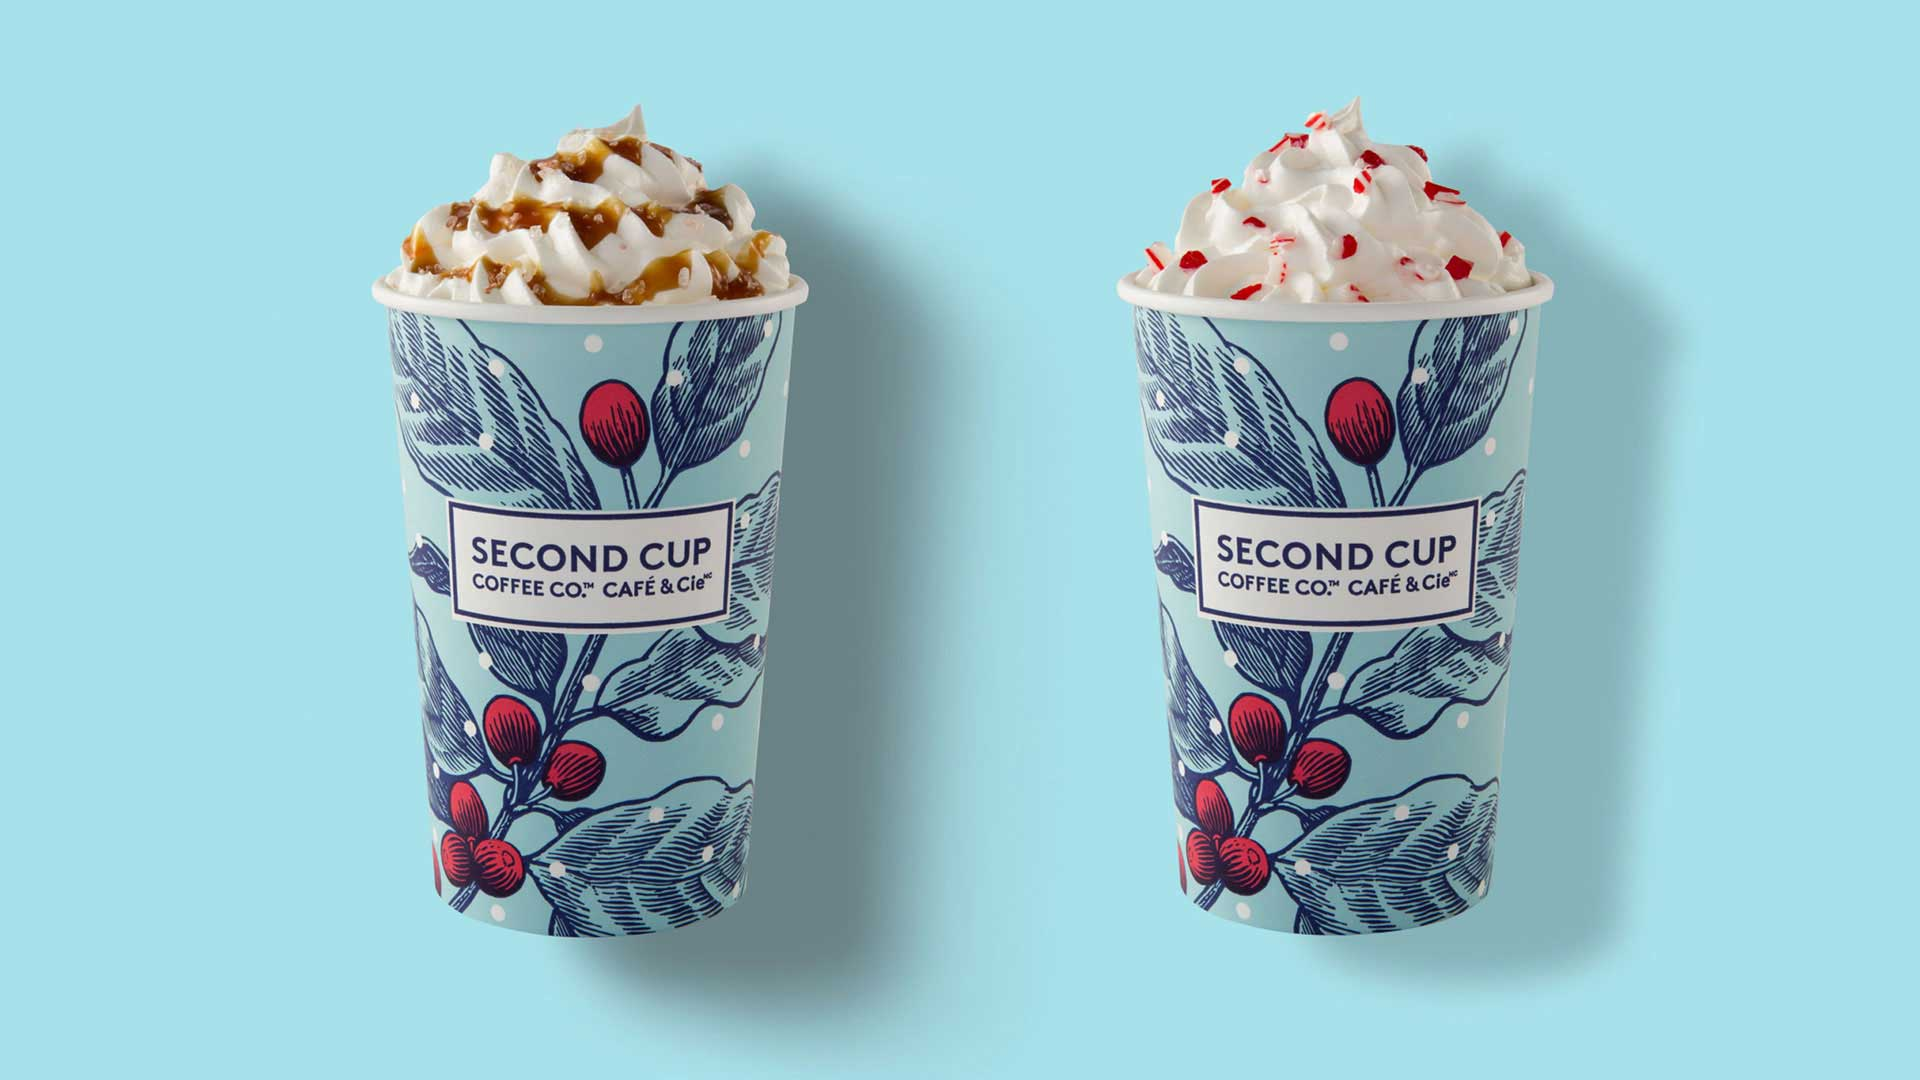 second cup holiday coffee cup design